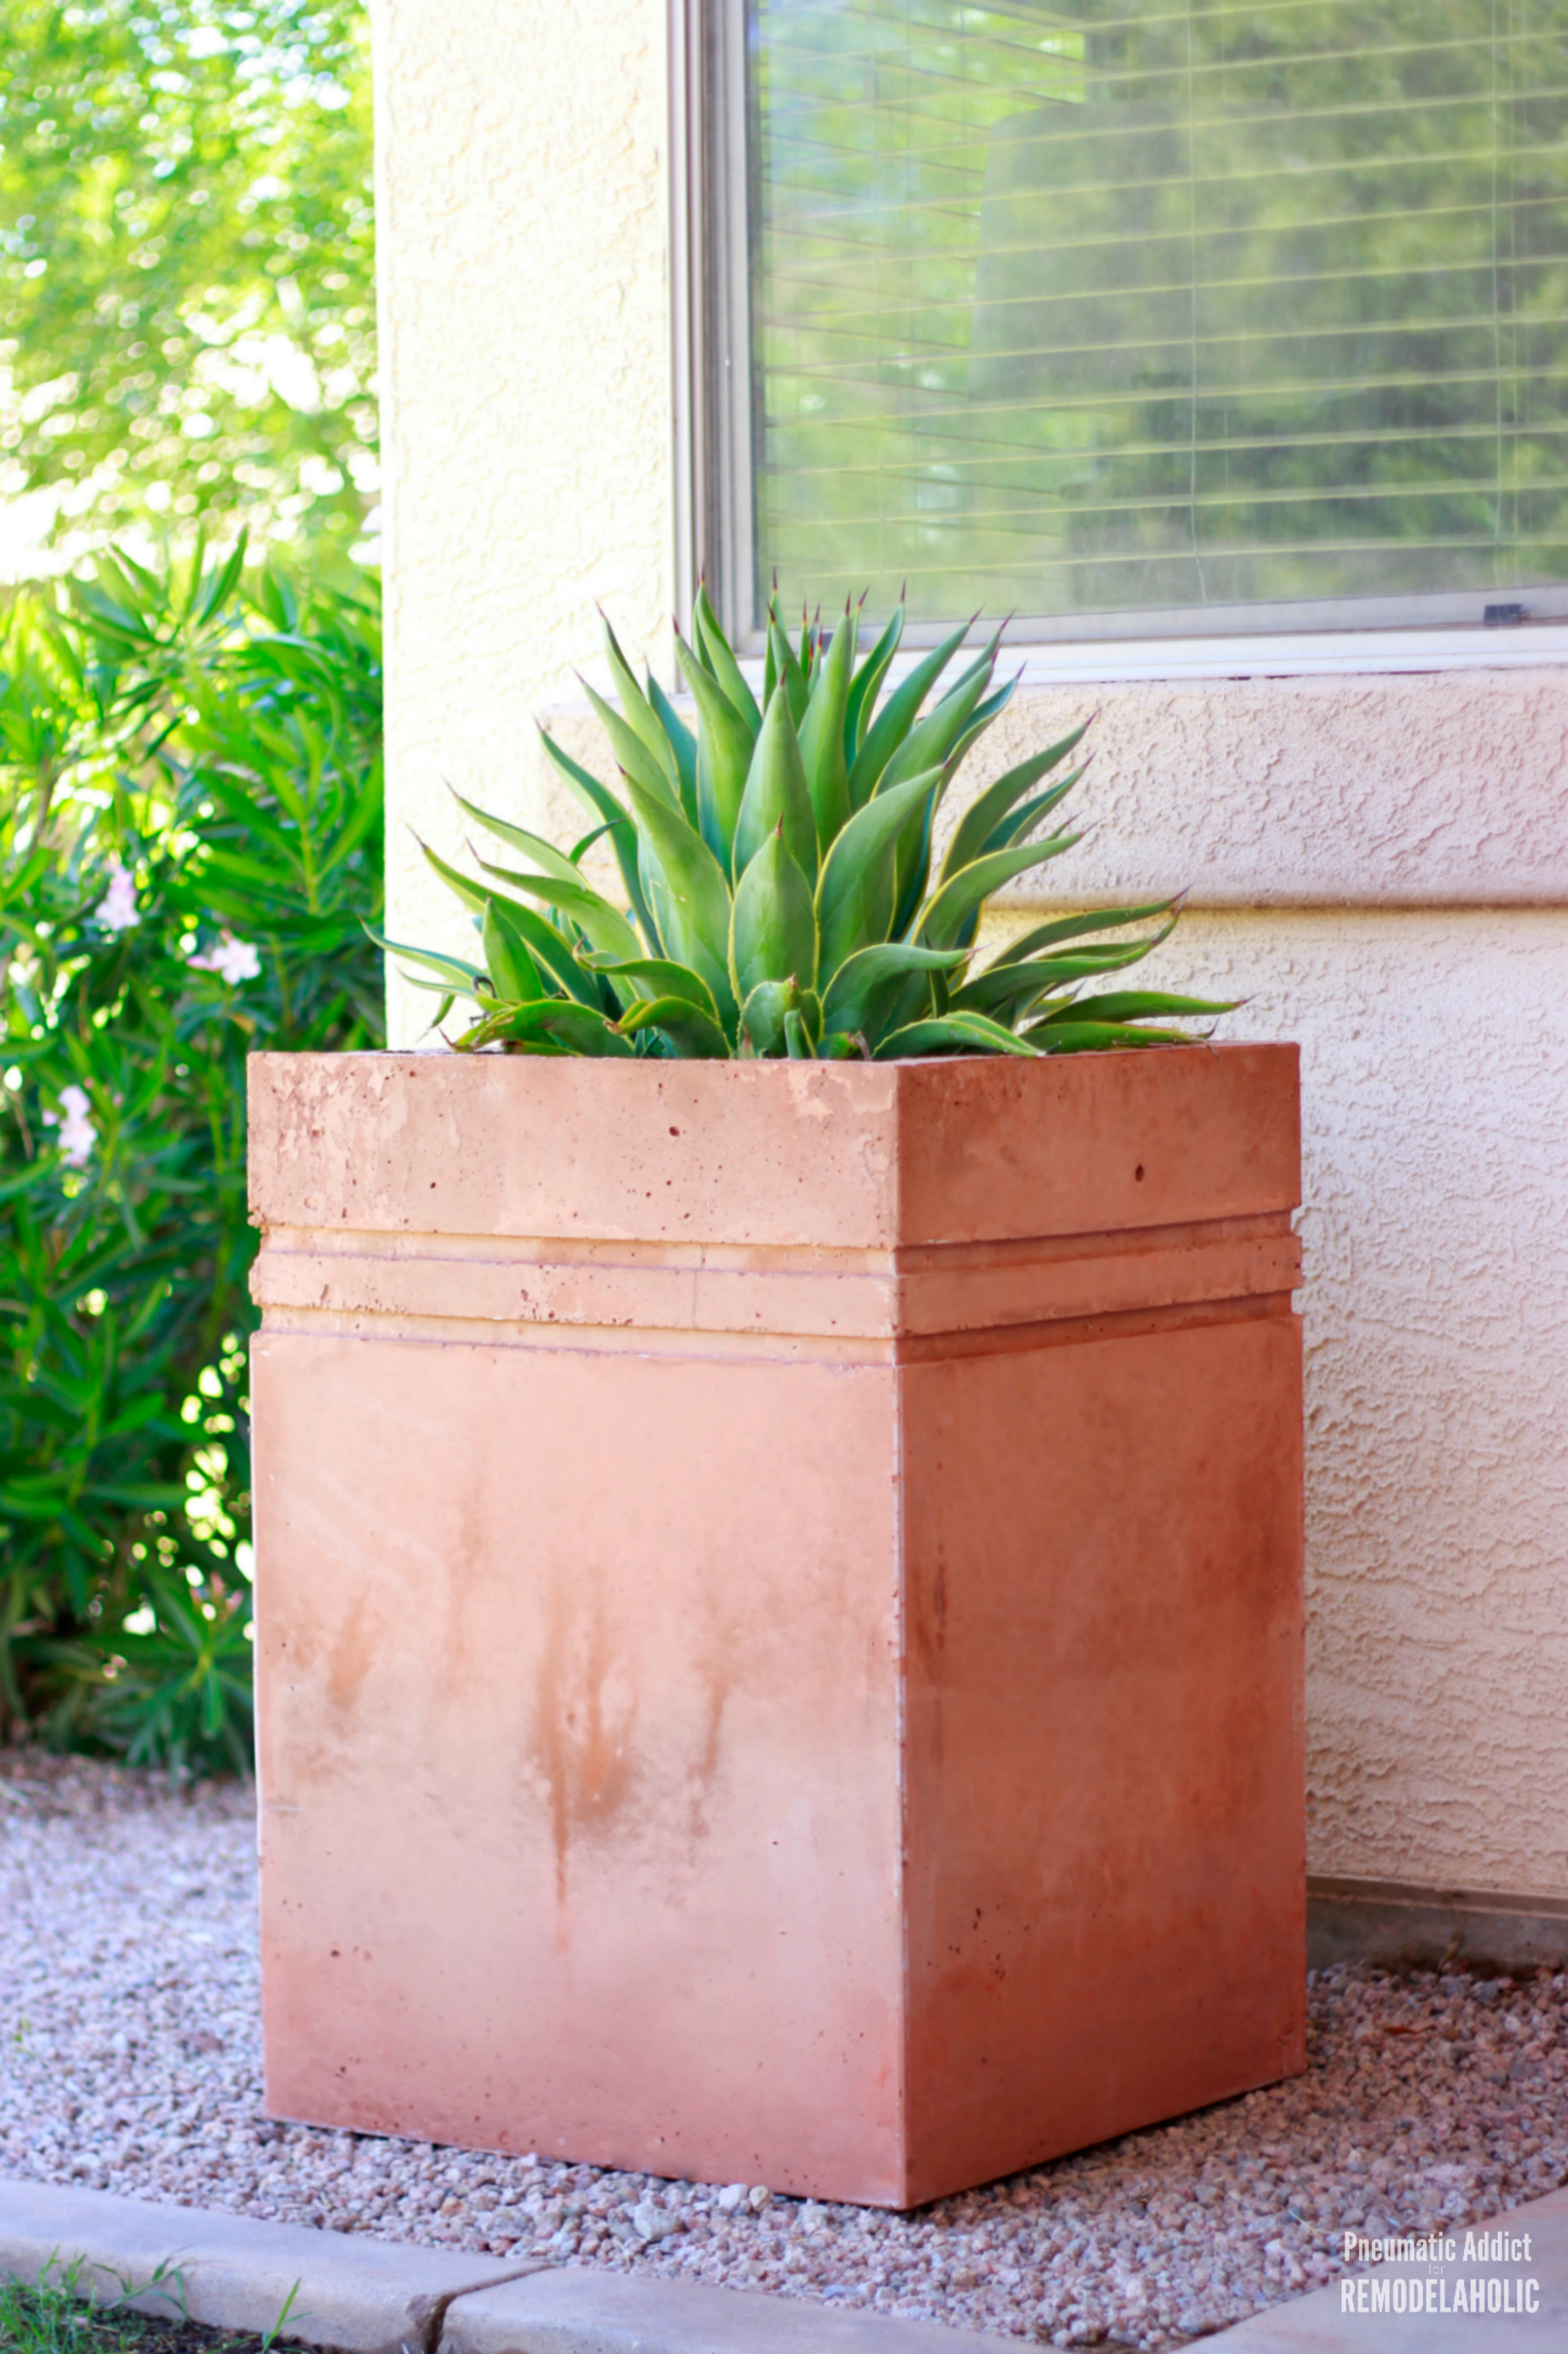 Large Decorative Flower Pots: Best Of 2016: 47 Must-See Projects From